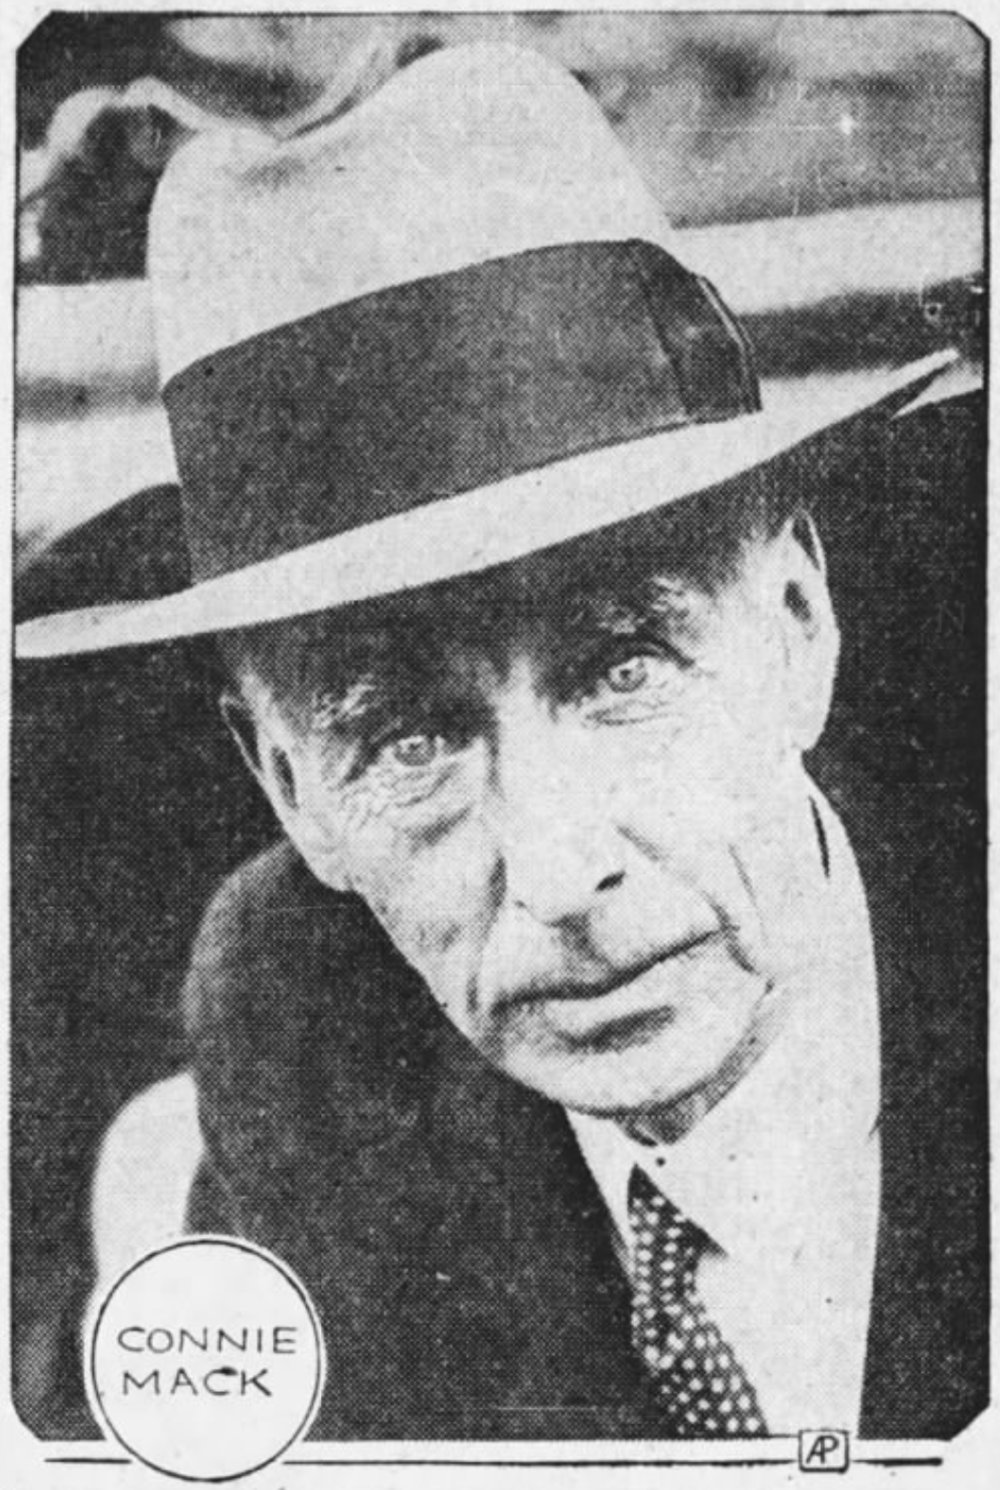 Connie Mack, 1933.